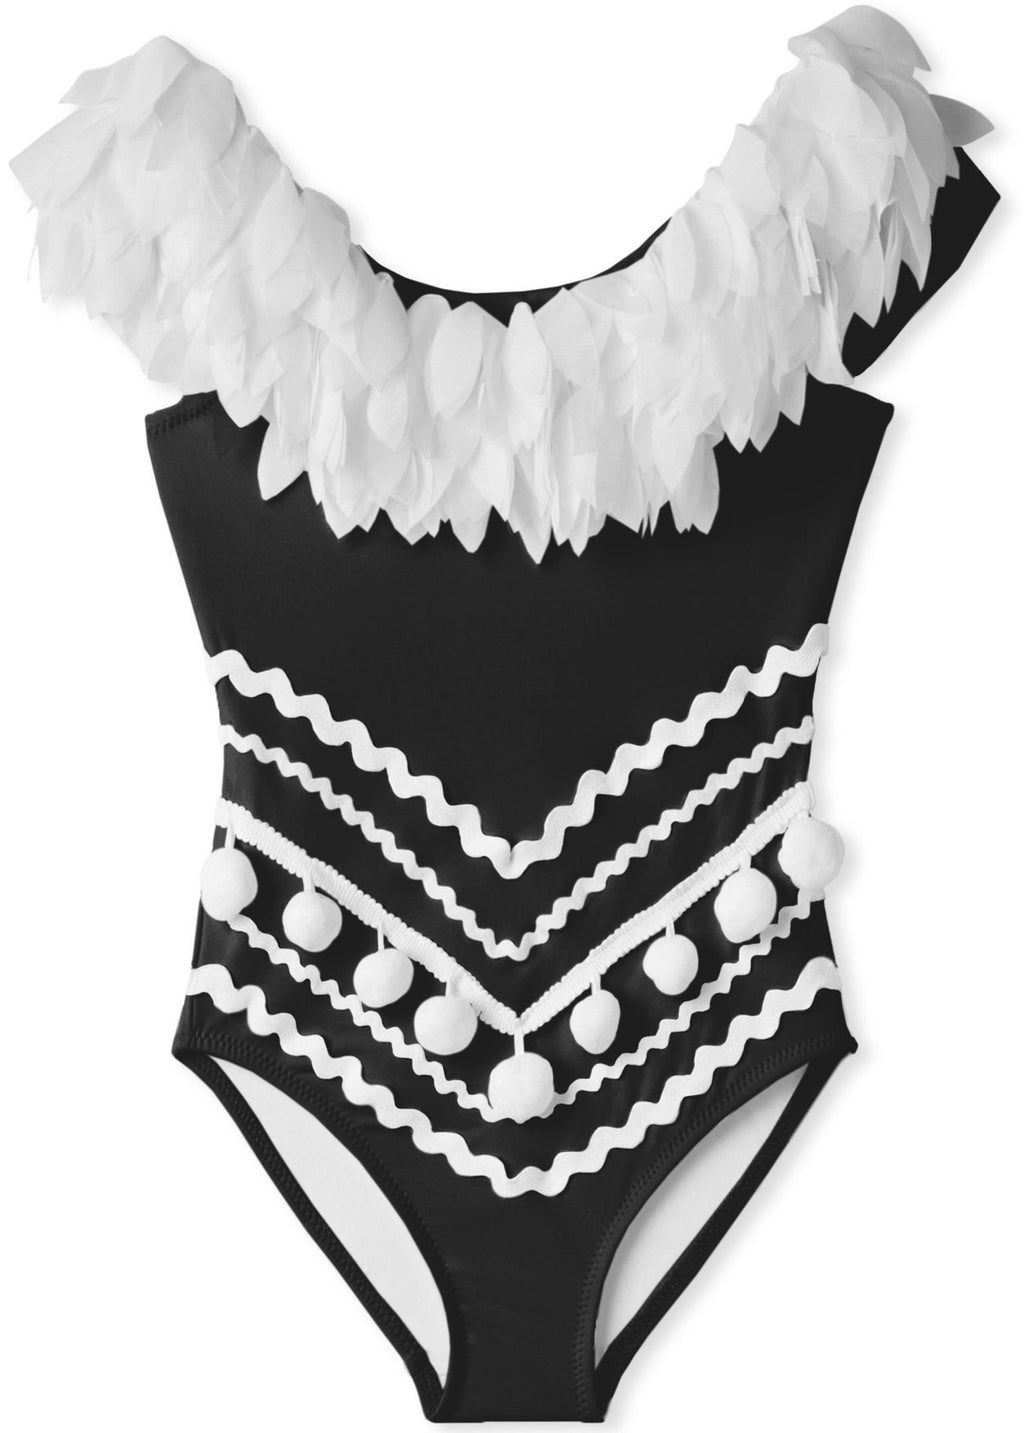 Stella Cove Black Draped Swimsuit with Petals & Pom Poms For Girls